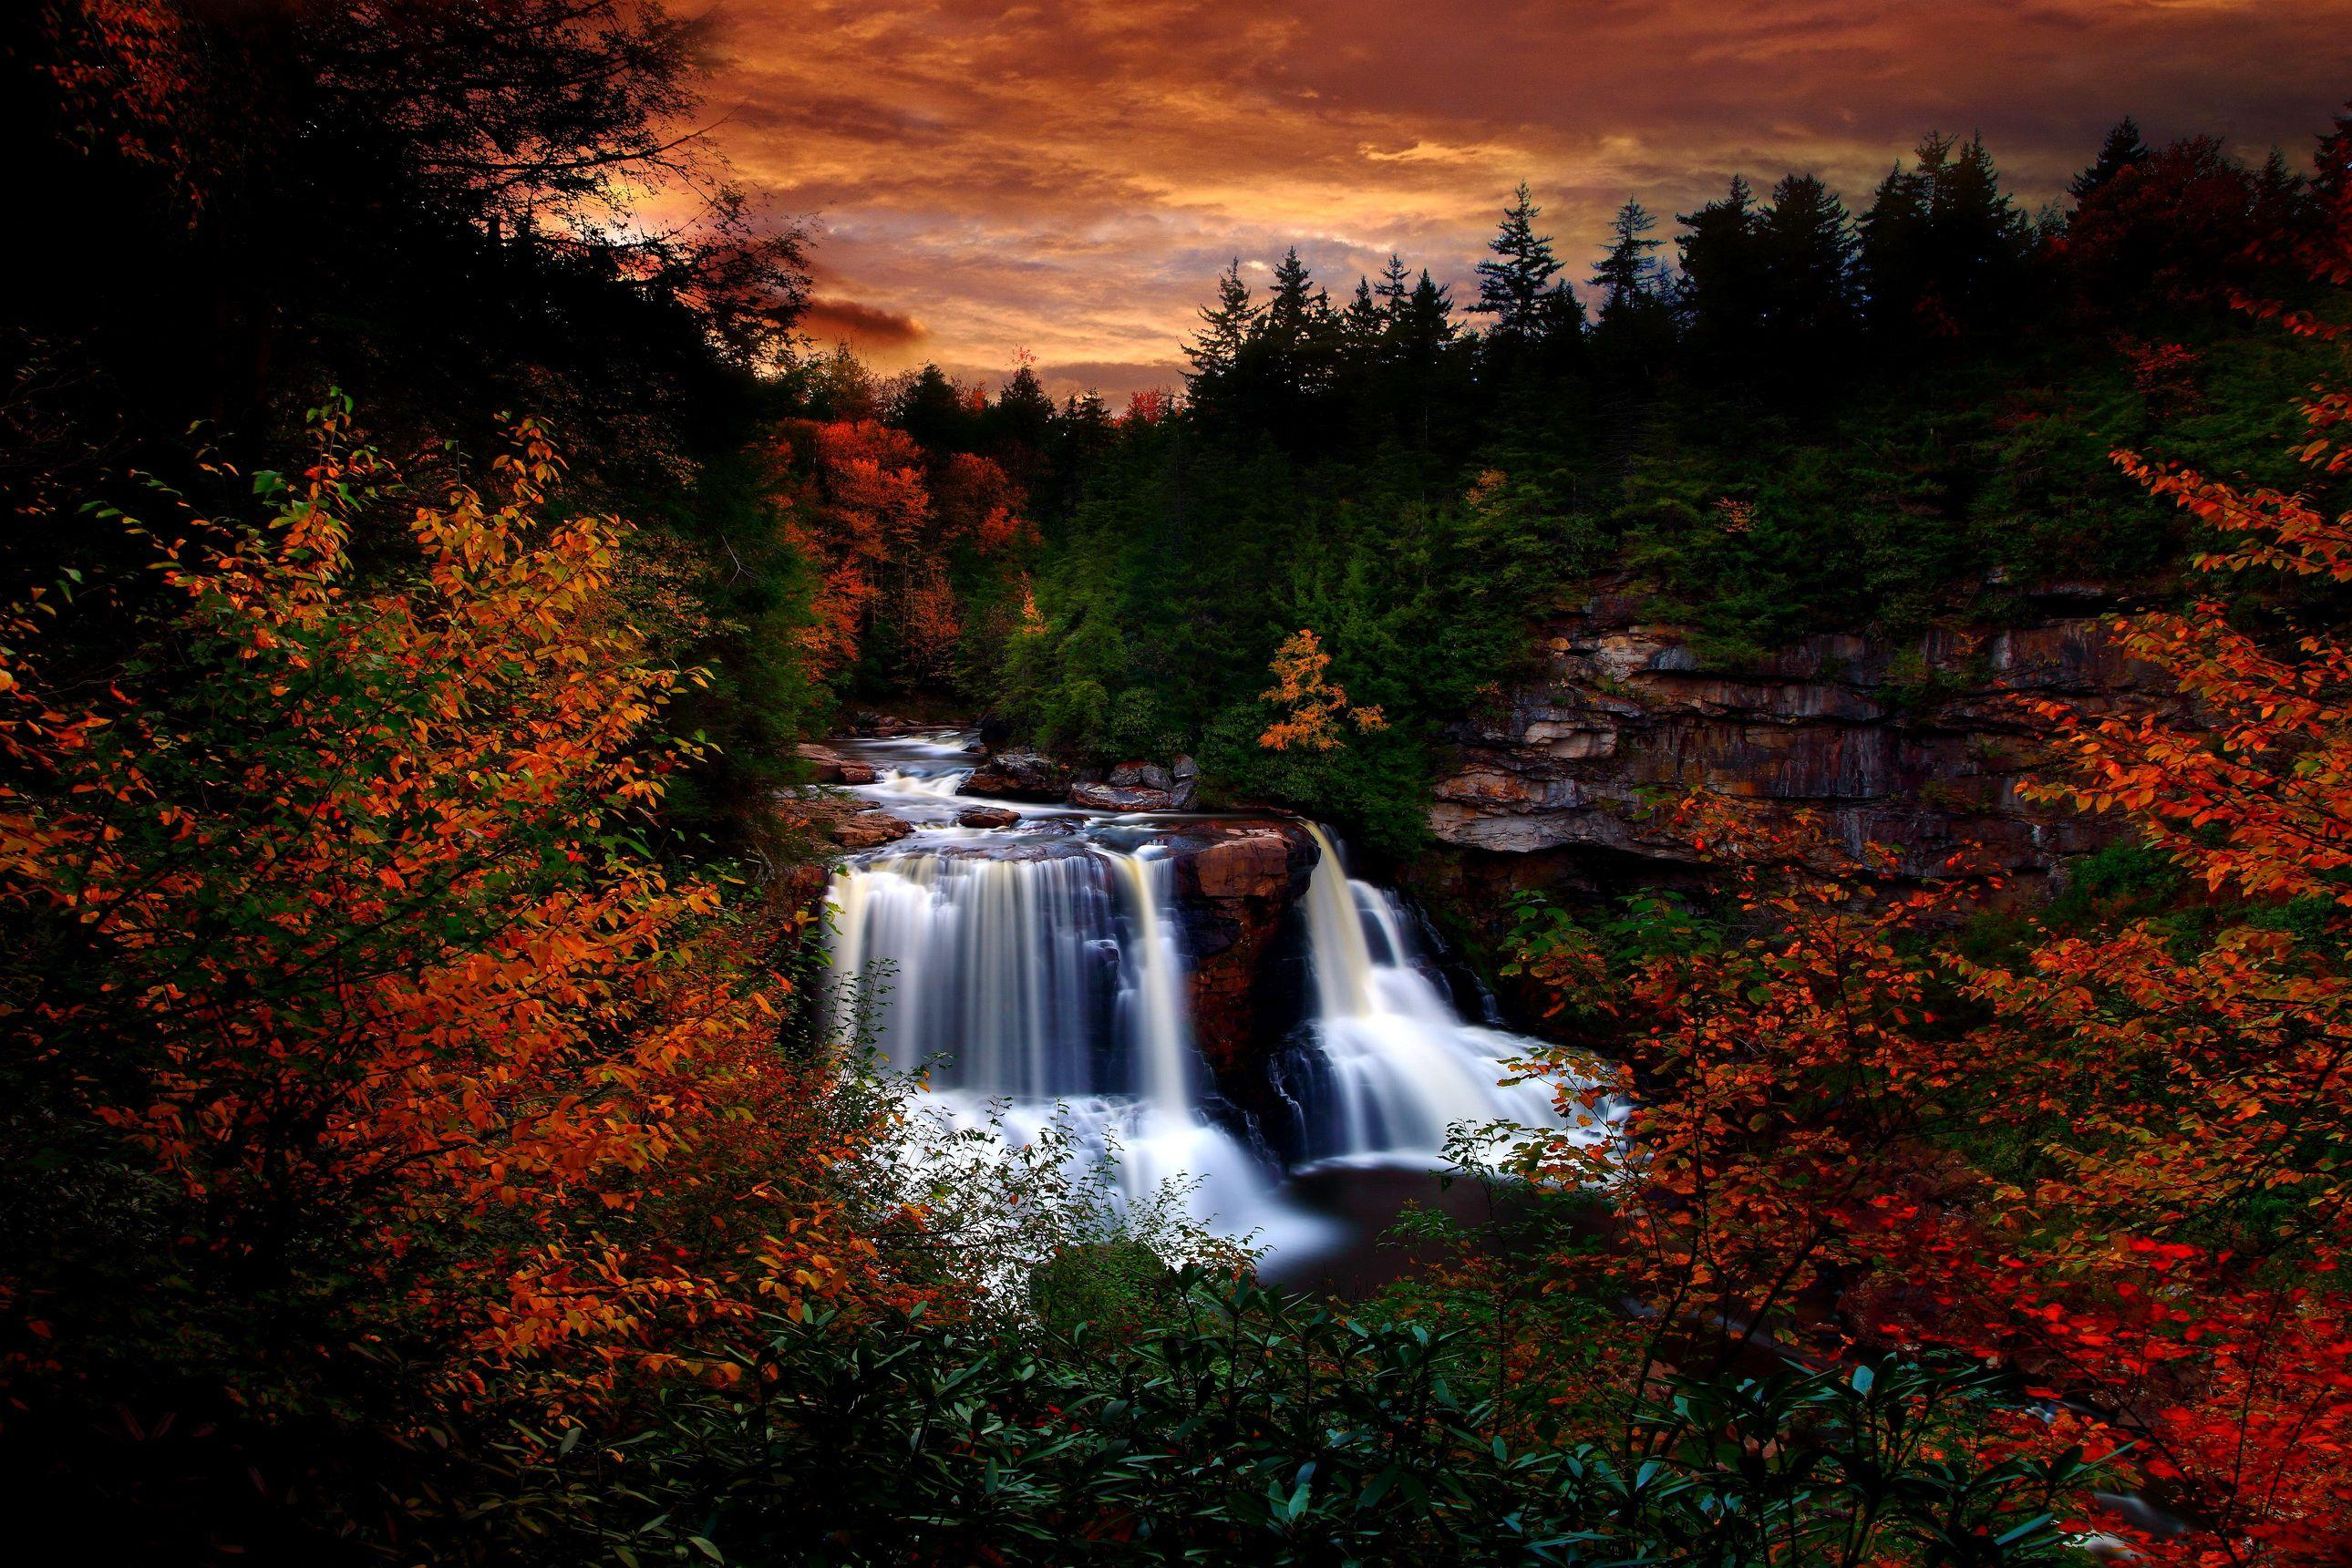 Autumn Waterfall at Blackwater Falls State Park, West Virginia by